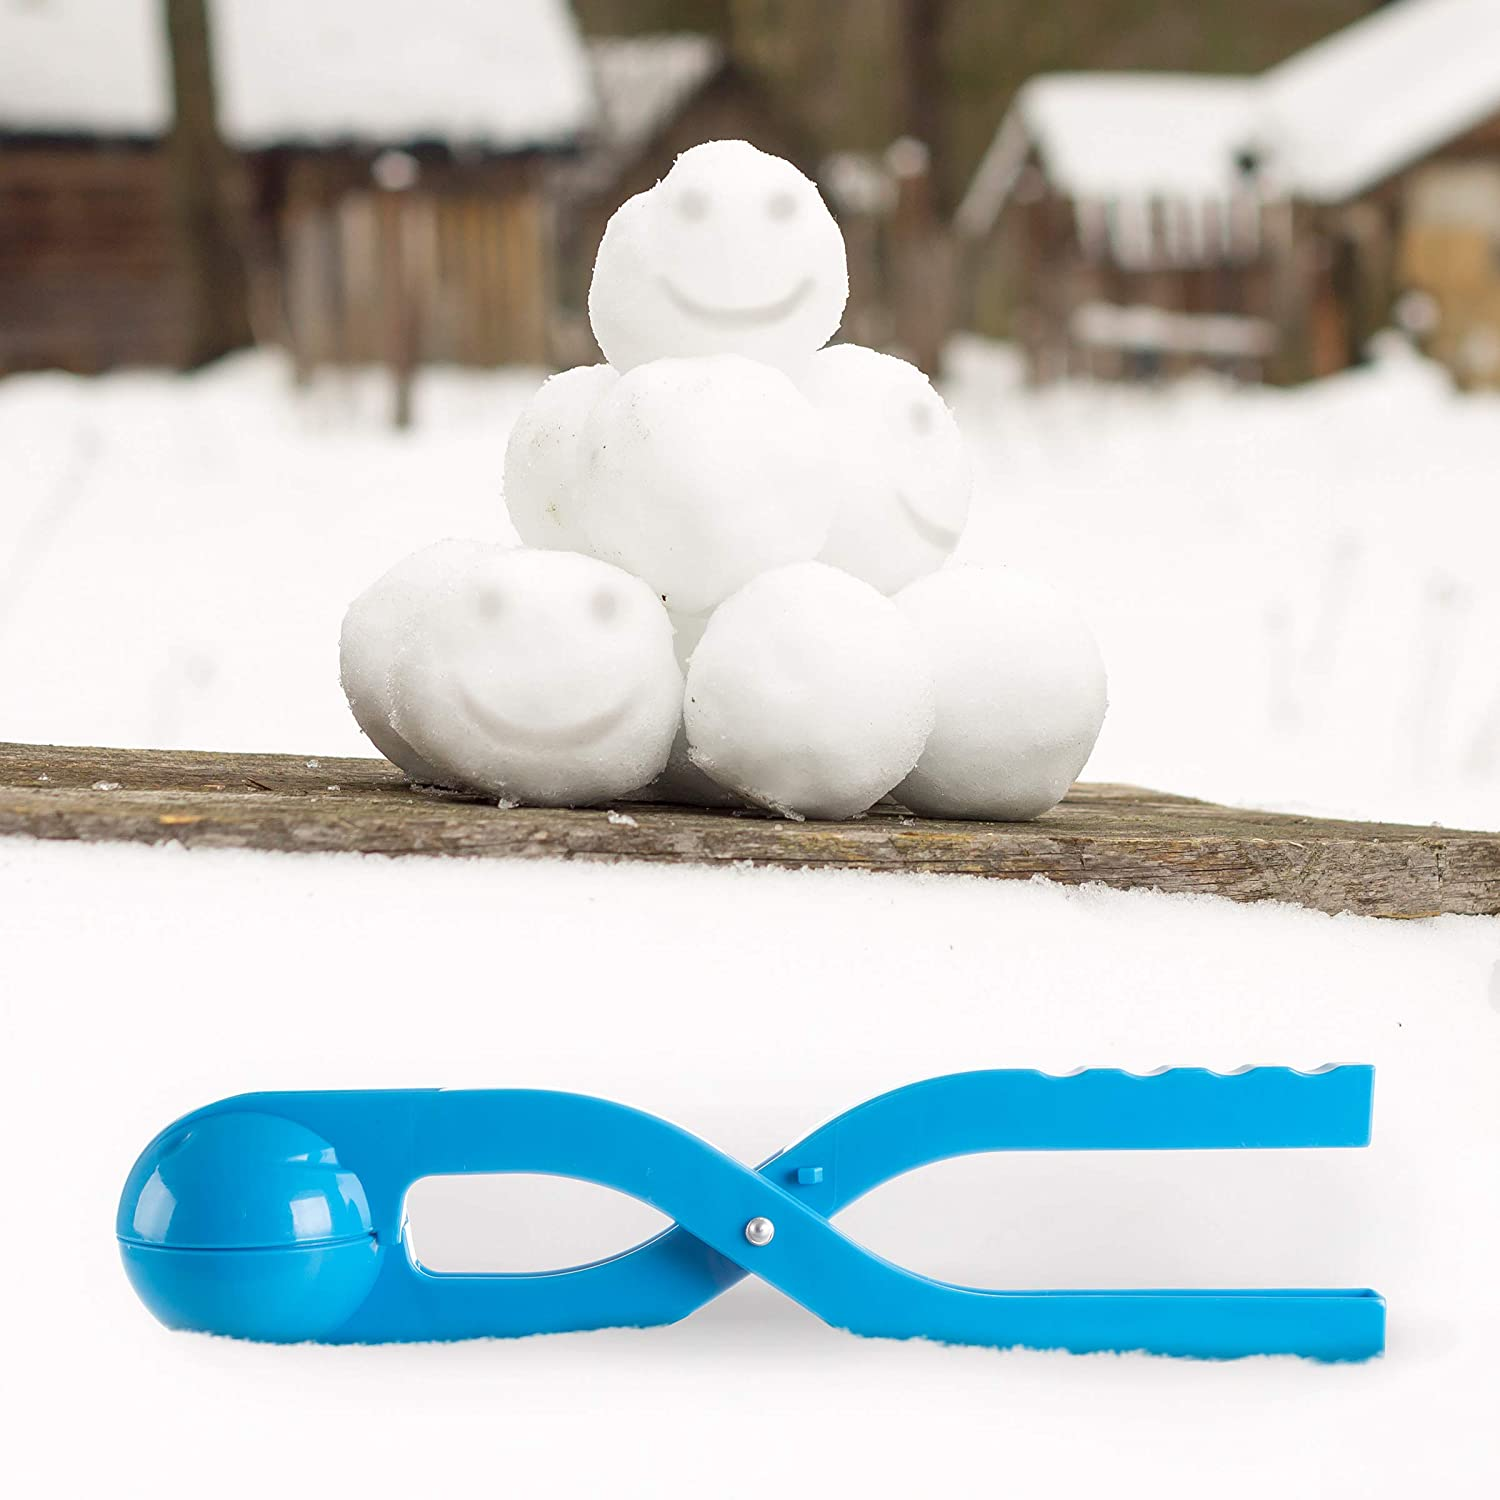 Snowball Maker Tool with Handle for Snow Ball Fights For Kids and Adults Play Hey Fun Winter Outdoor Activities and More Set of 2